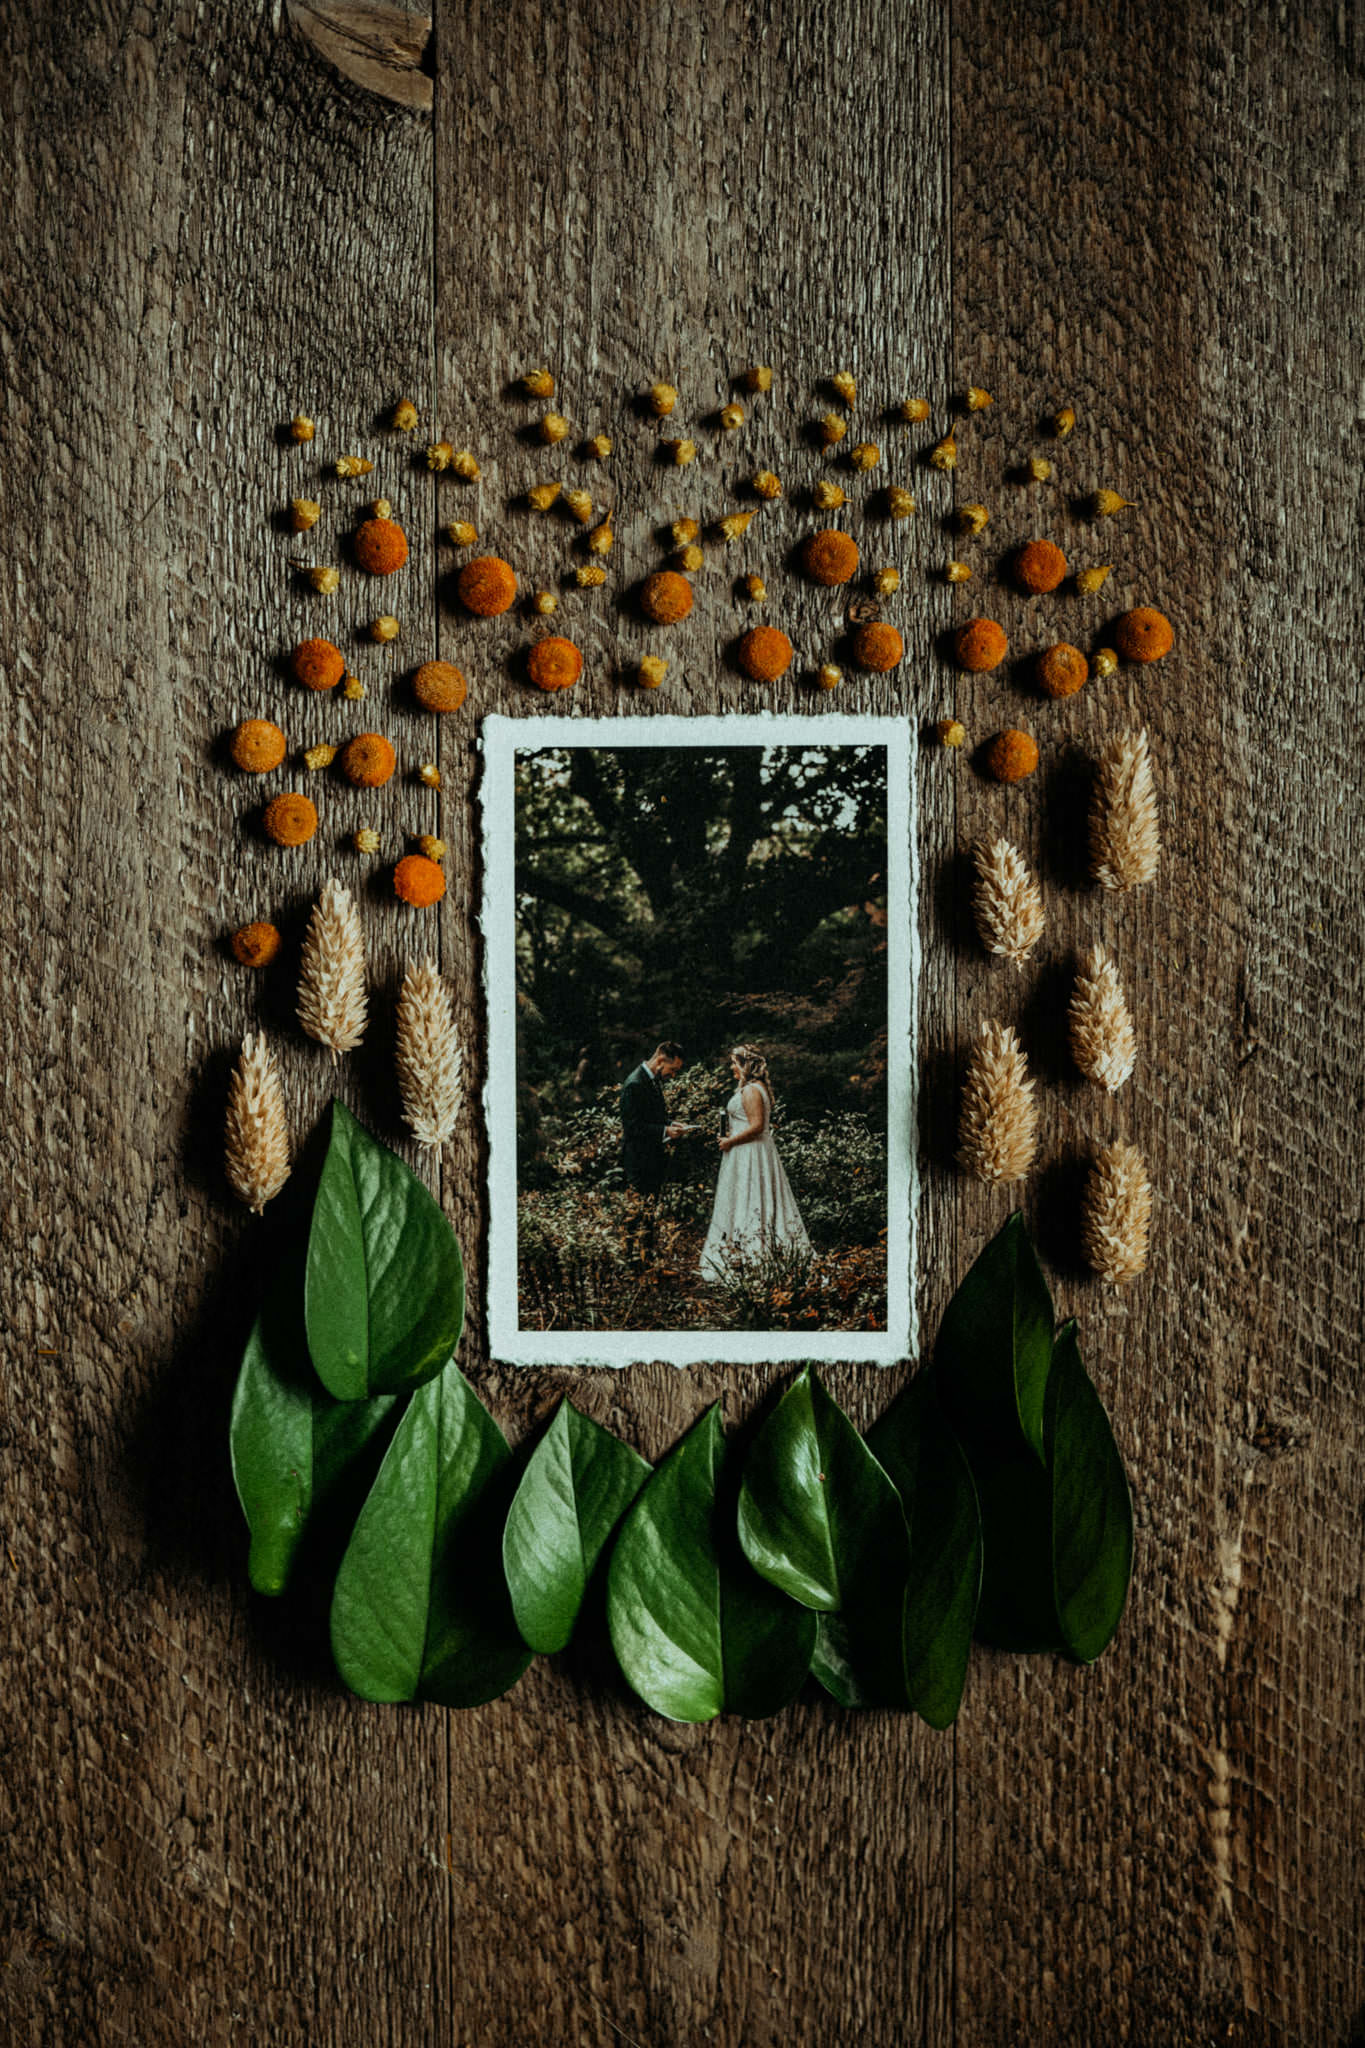 a wedding photo on a table surrounded by leaves and blossoms